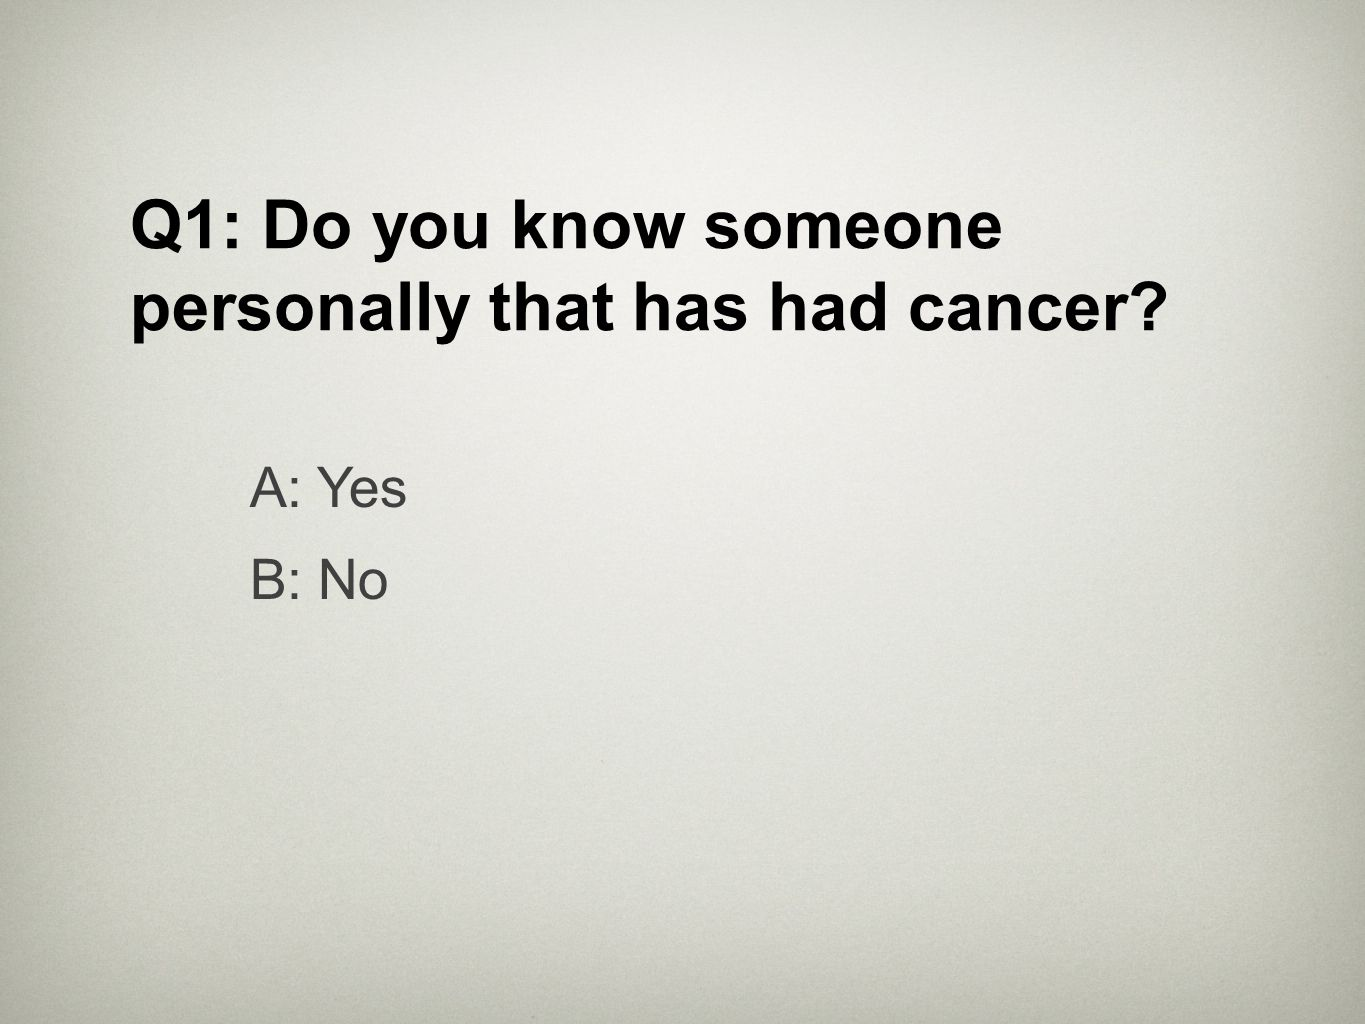 Q1: Do you know someone personally that has had cancer